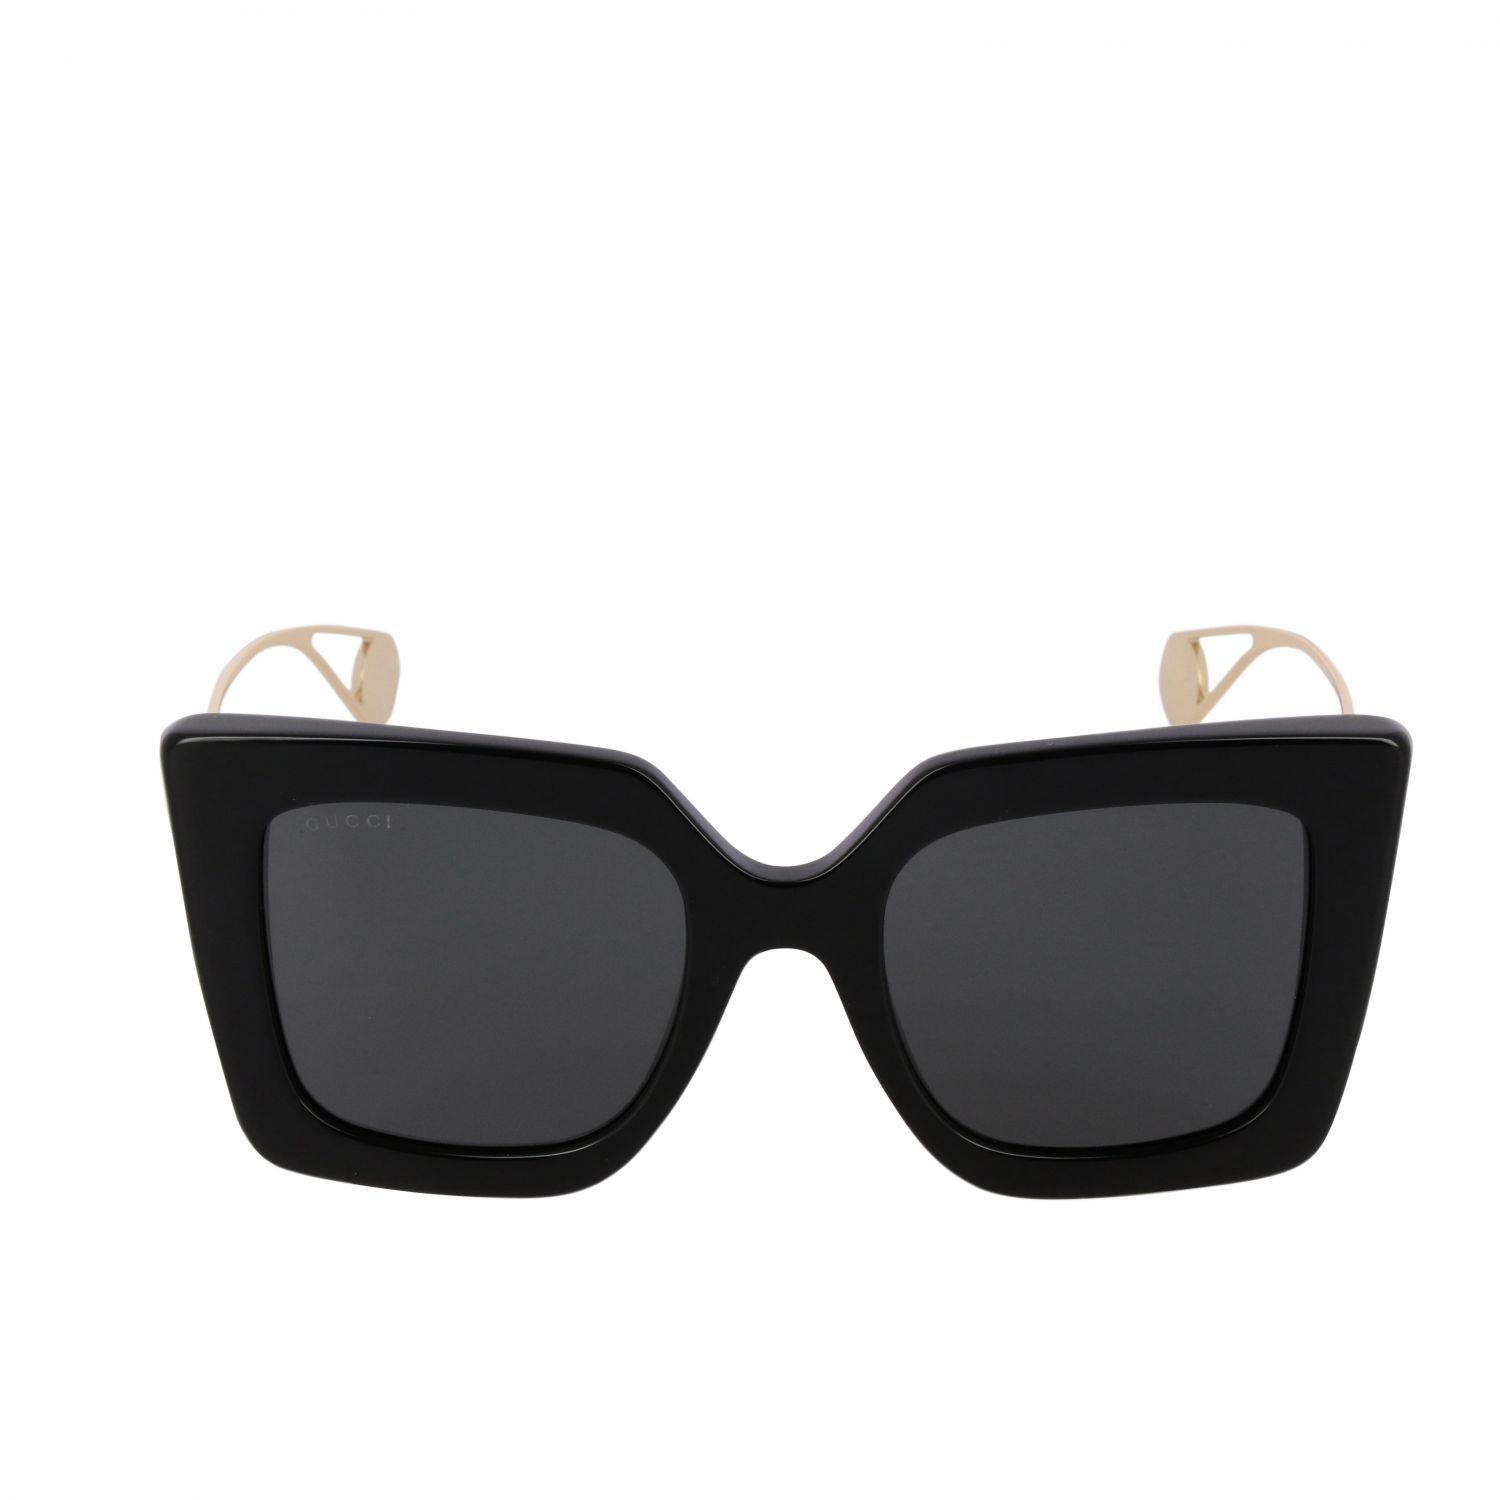 Glasses Gucci: Glasses women Gucci black 2